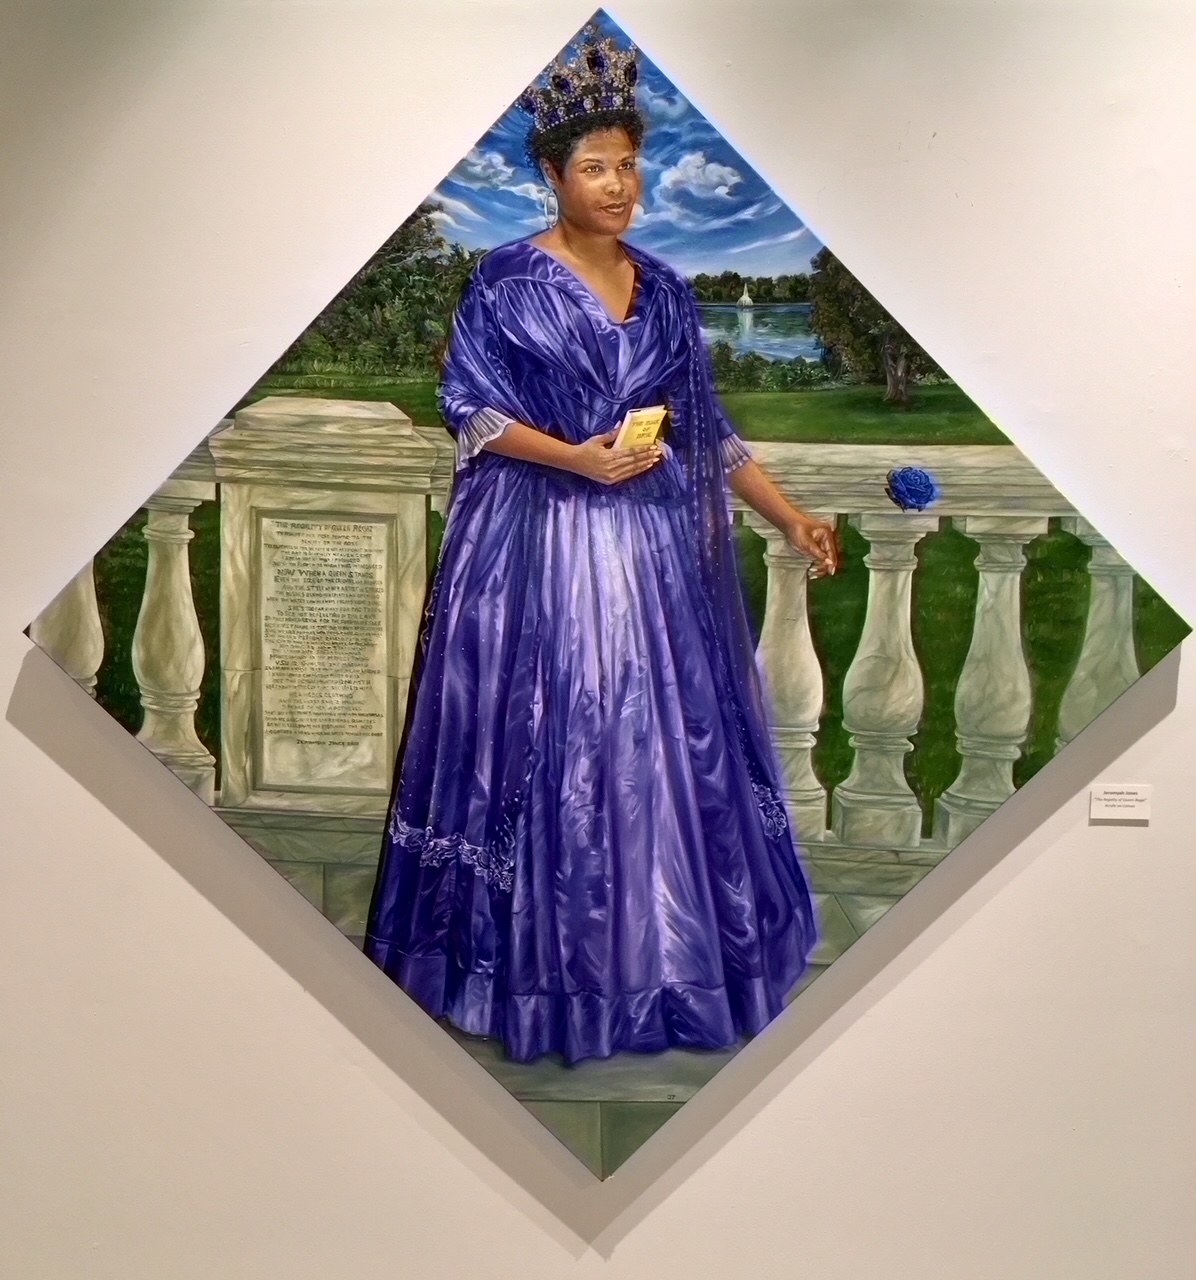 Painting of a woman wearing a crown and a regal dress